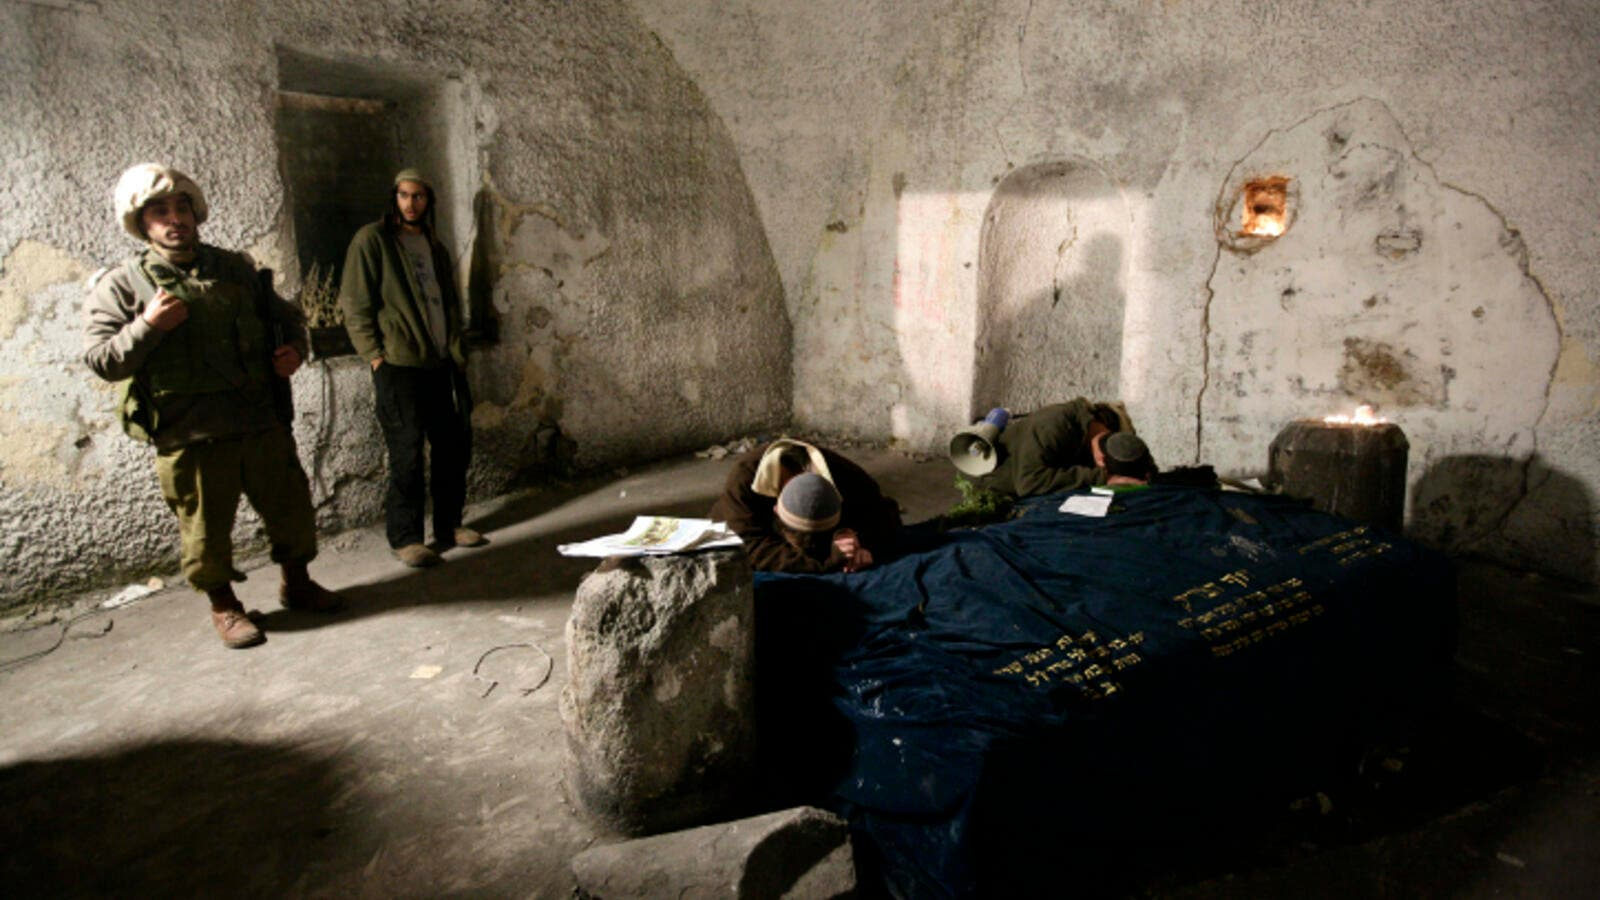 Jews at prayer in Joseph's Tomb in the West Bank city of Nablus. (AFP/File)